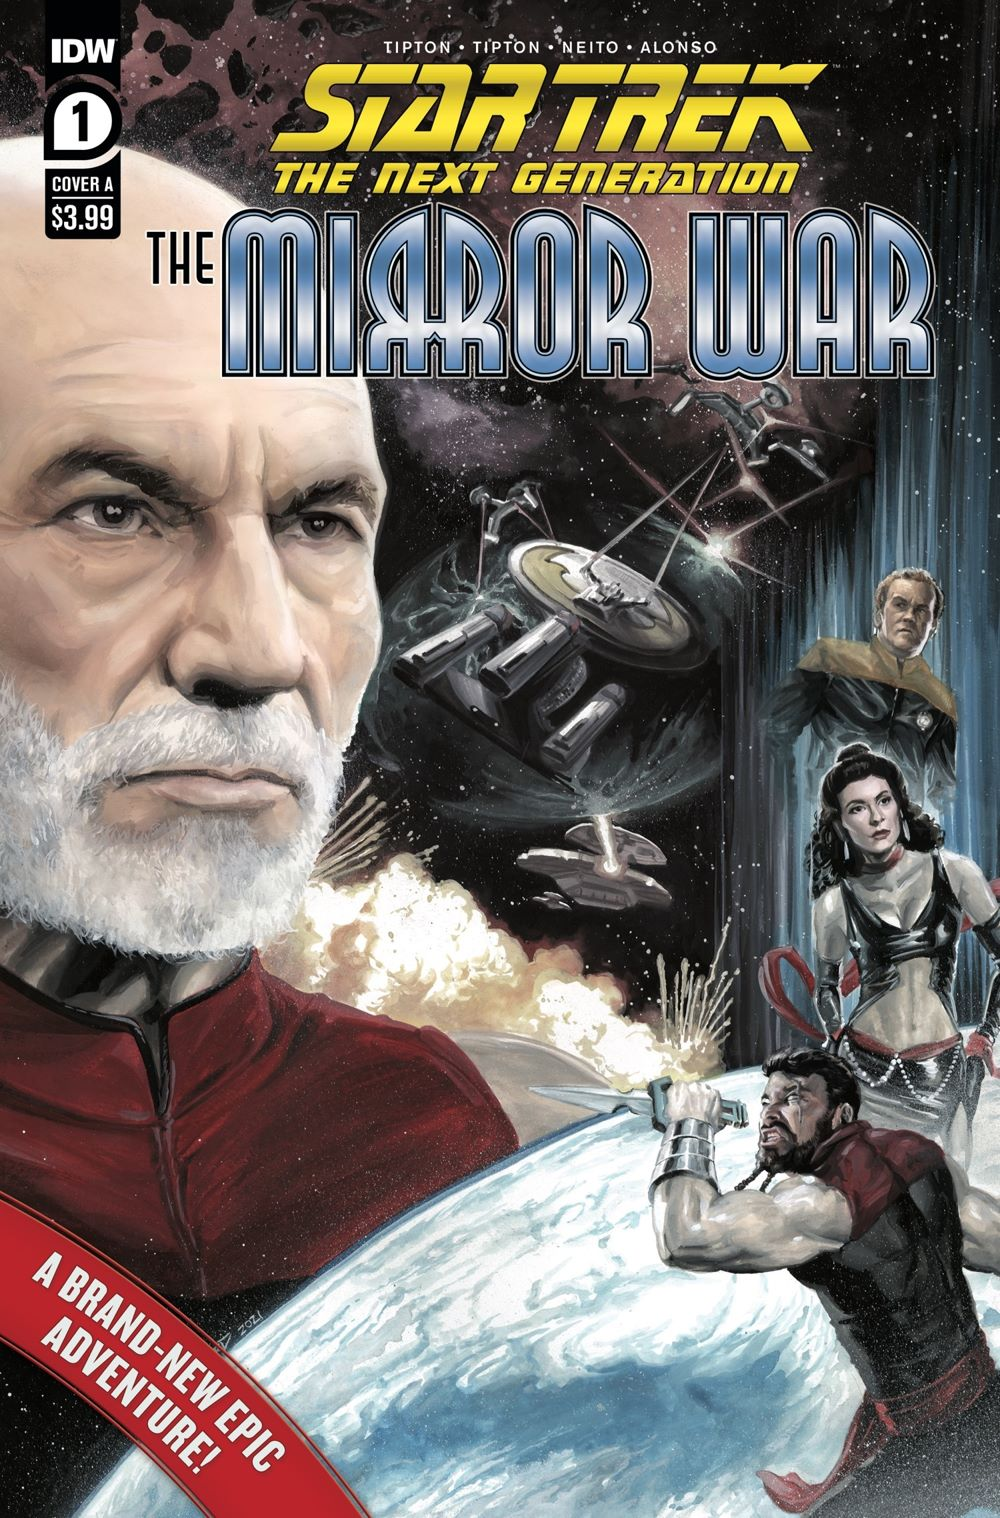 f09f2f8f-0be4-1ca7-94a4-dae619c2c08f STAR TREK: THE MIRROR WAR to be year-long comic book event